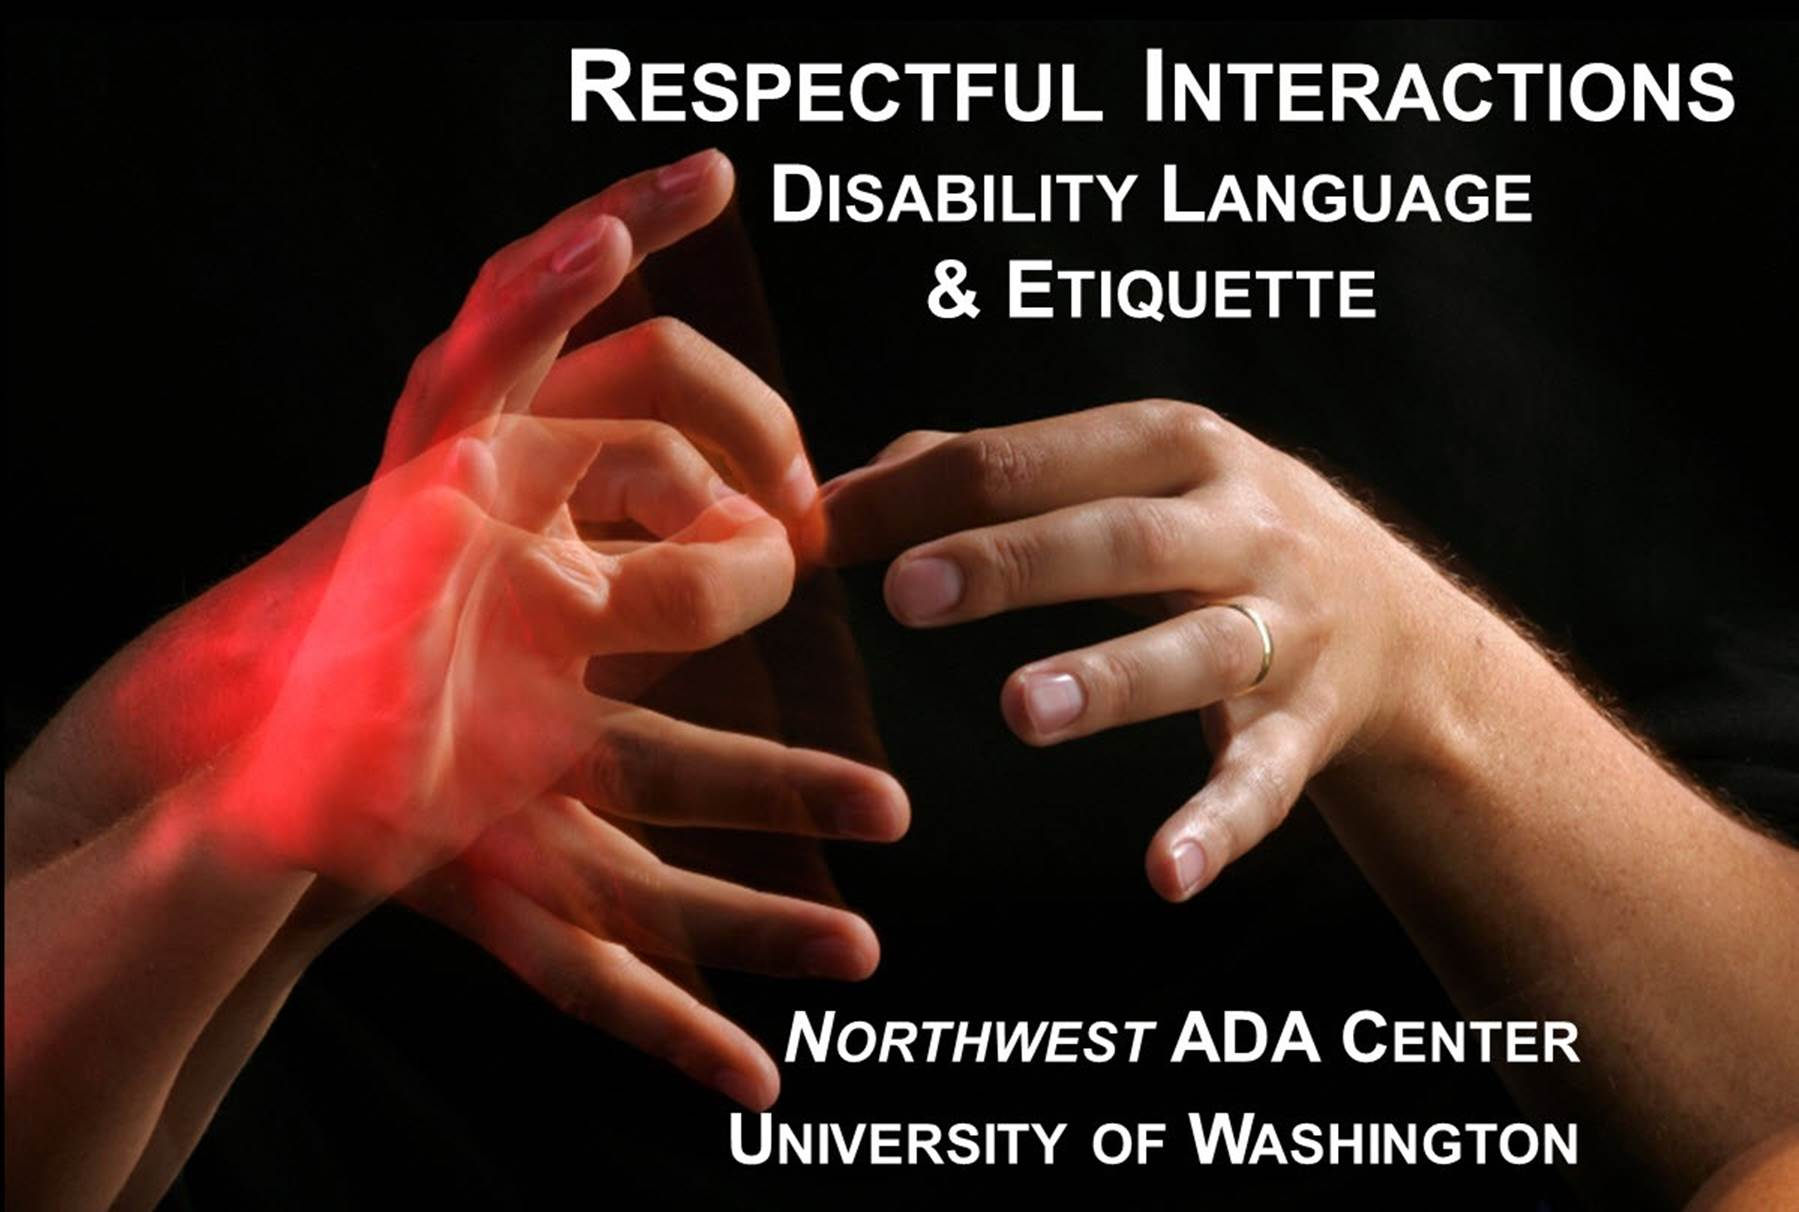 Respectful Interactions - Disability Language & Etiquette